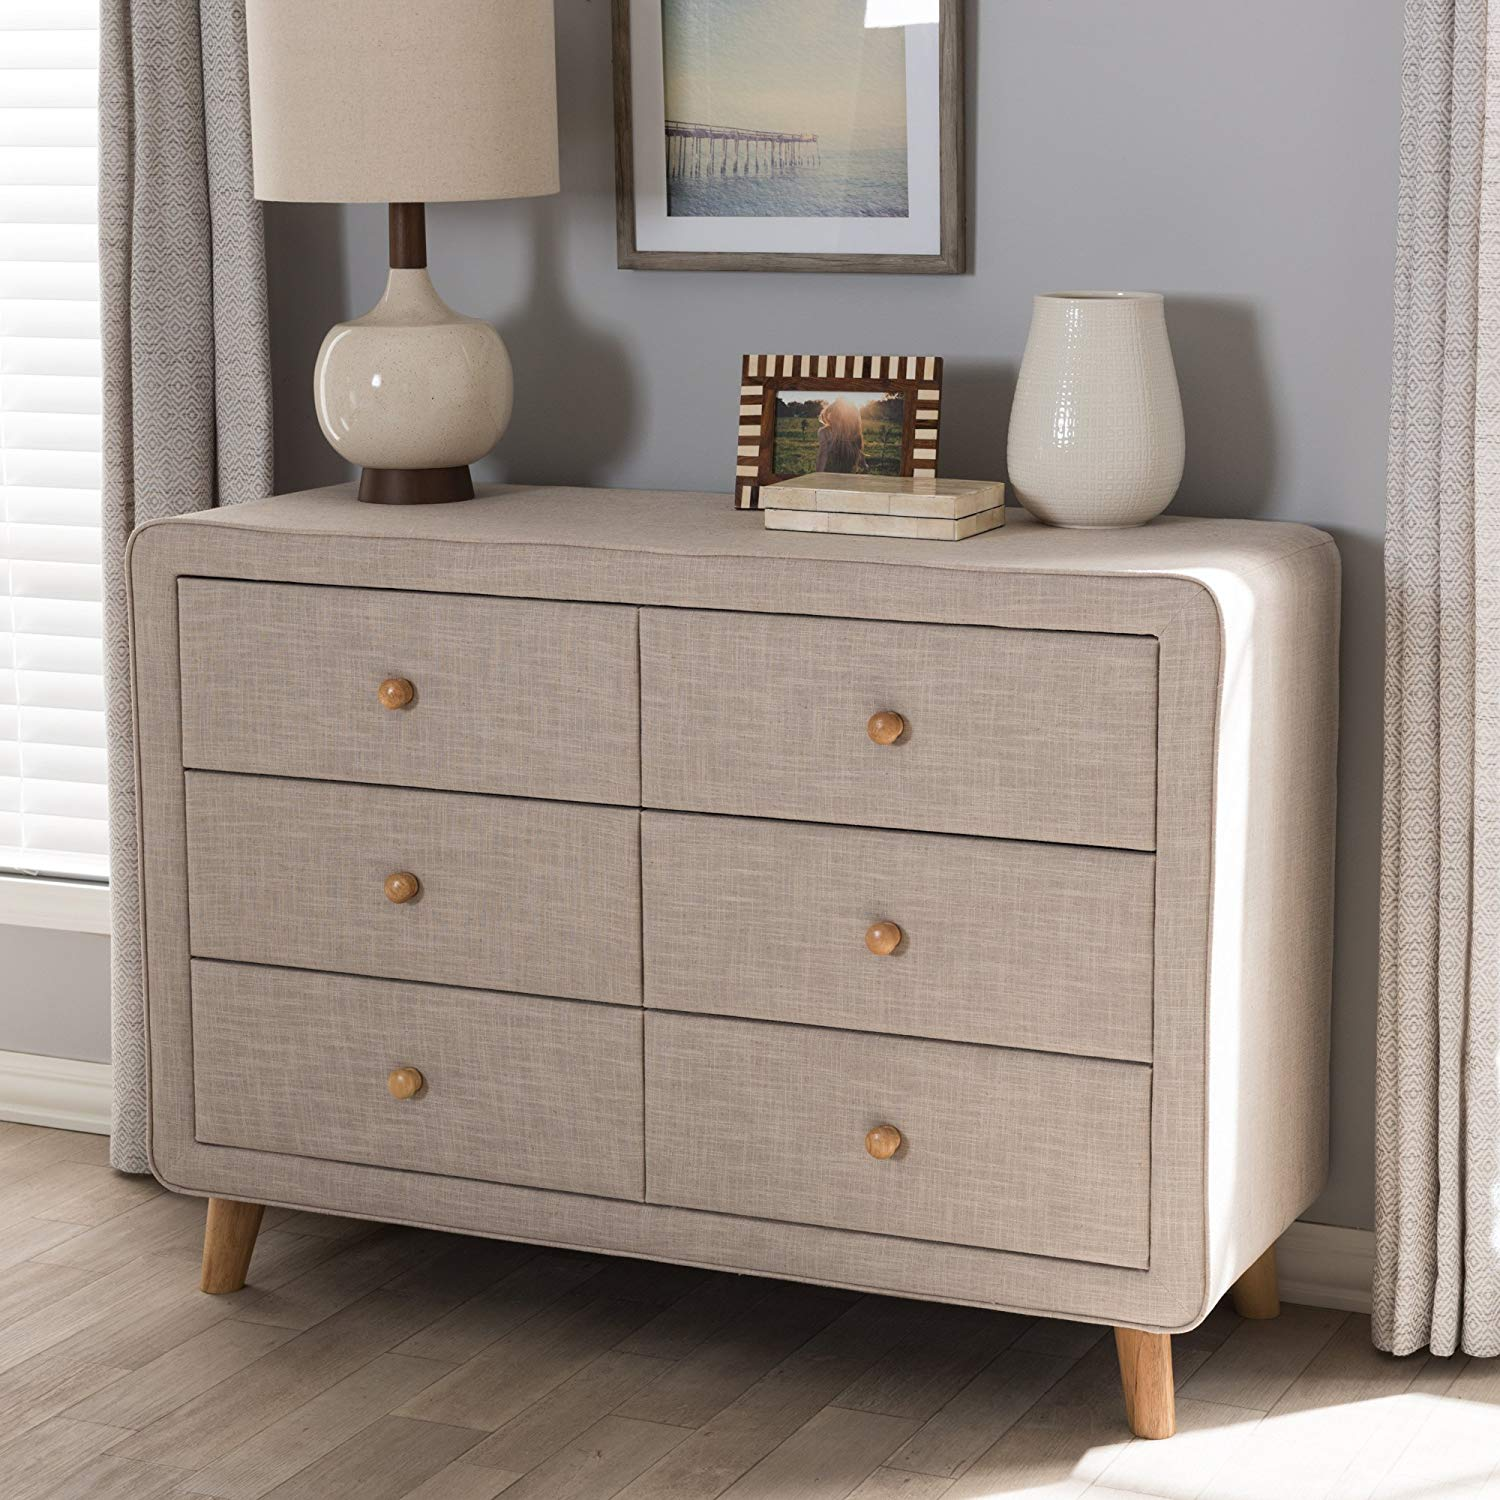 Mid-Century Beige Linen Upholstered 6-Drawer Dresser in bedroom